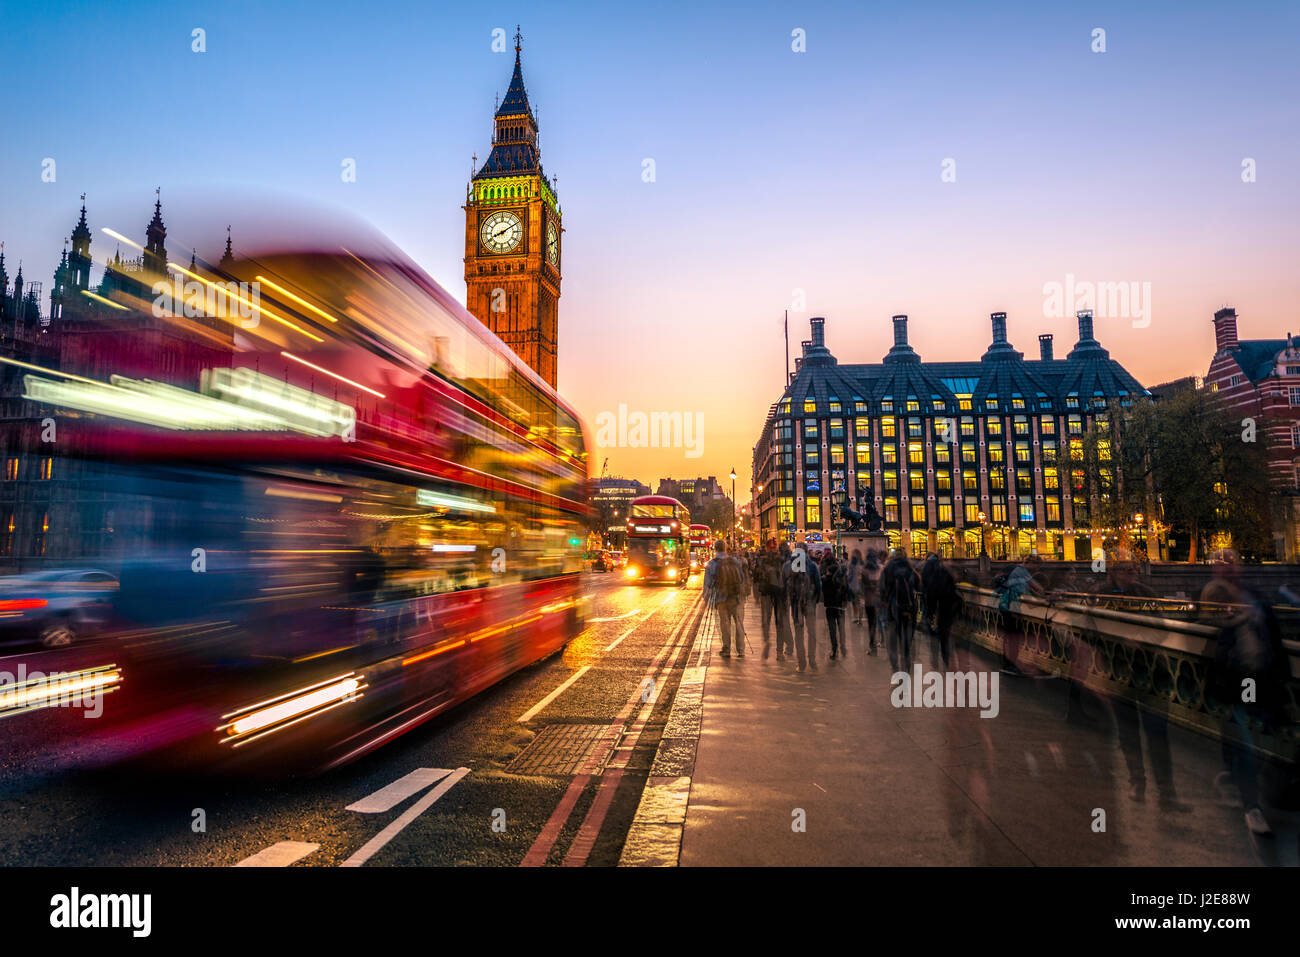 Red double decker bus in front of Big Ben, dusk, evening light, sunset, Houses of Parliament, Westminster Bridge - Stock Image